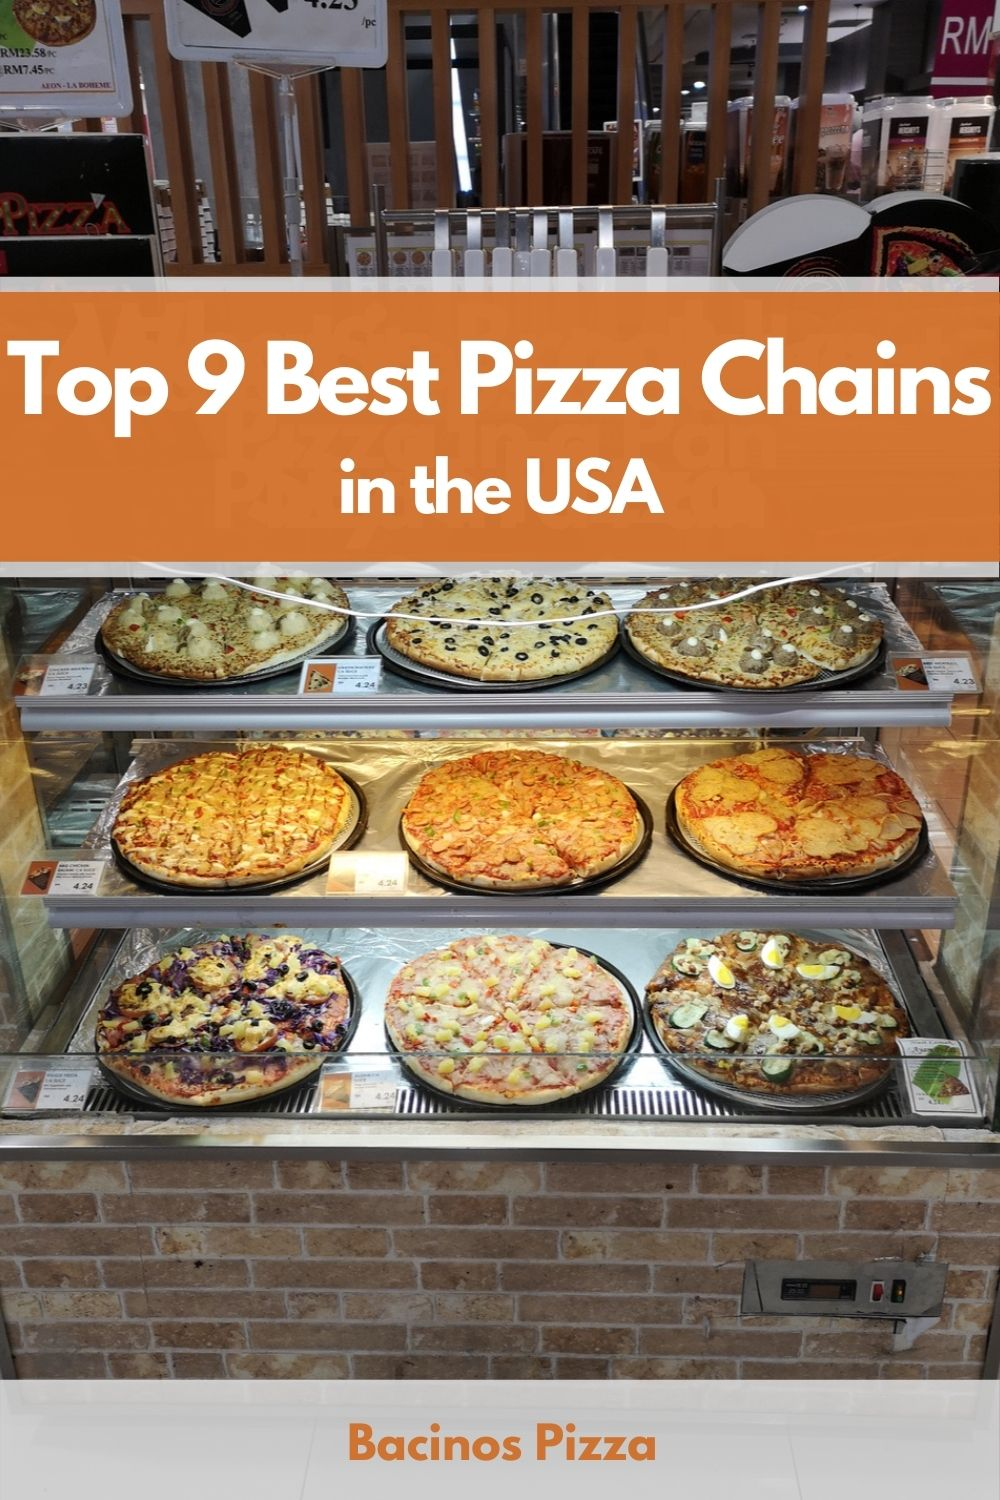 Top 9 Best Pizza Chains in the USA pin 2